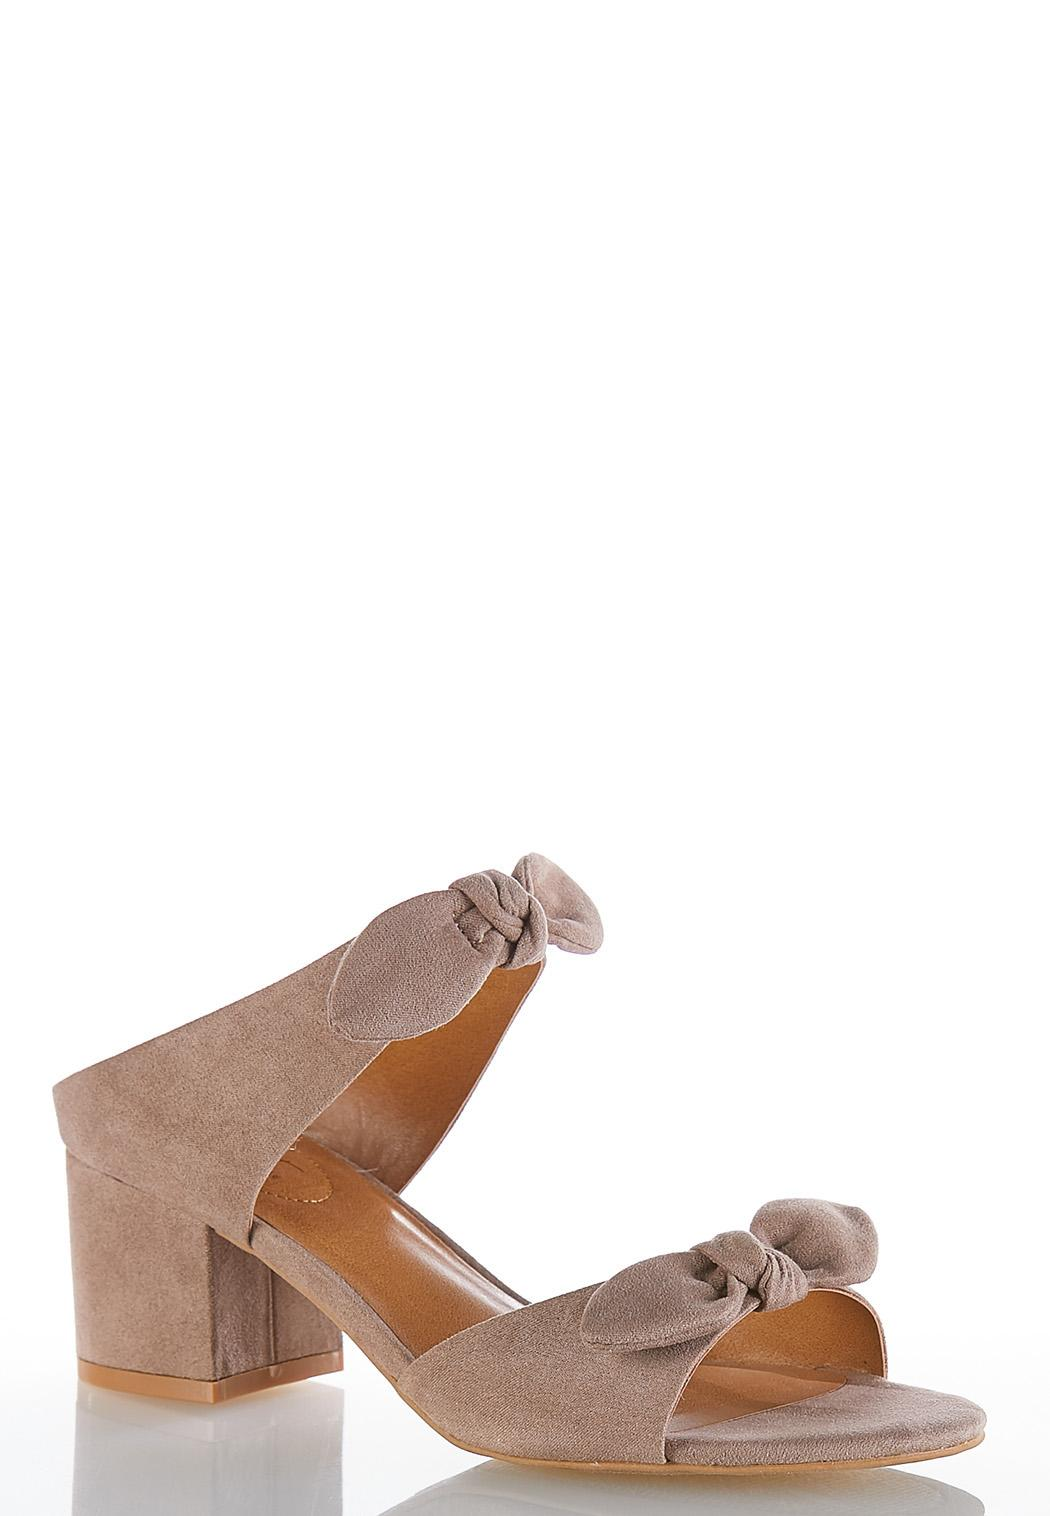 46b1dfd64208 Wide Width Faux Suede Bow Mules Heels Cato Fashions